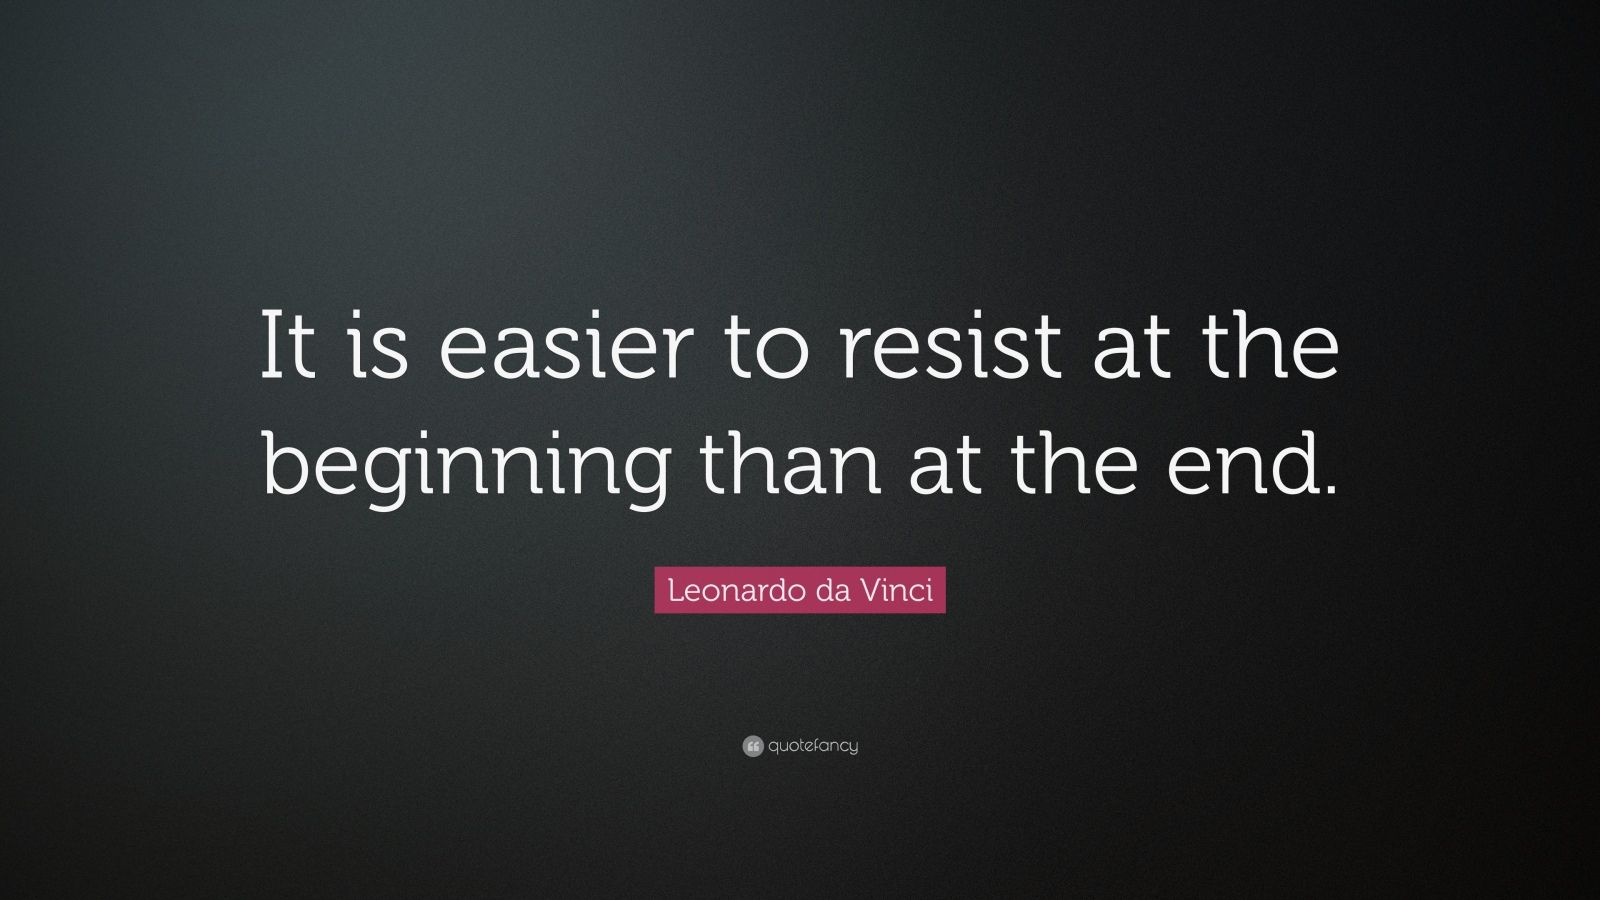 """Leonardo da Vinci Quote: """"It is easier to resist at the beginning than at the end."""""""